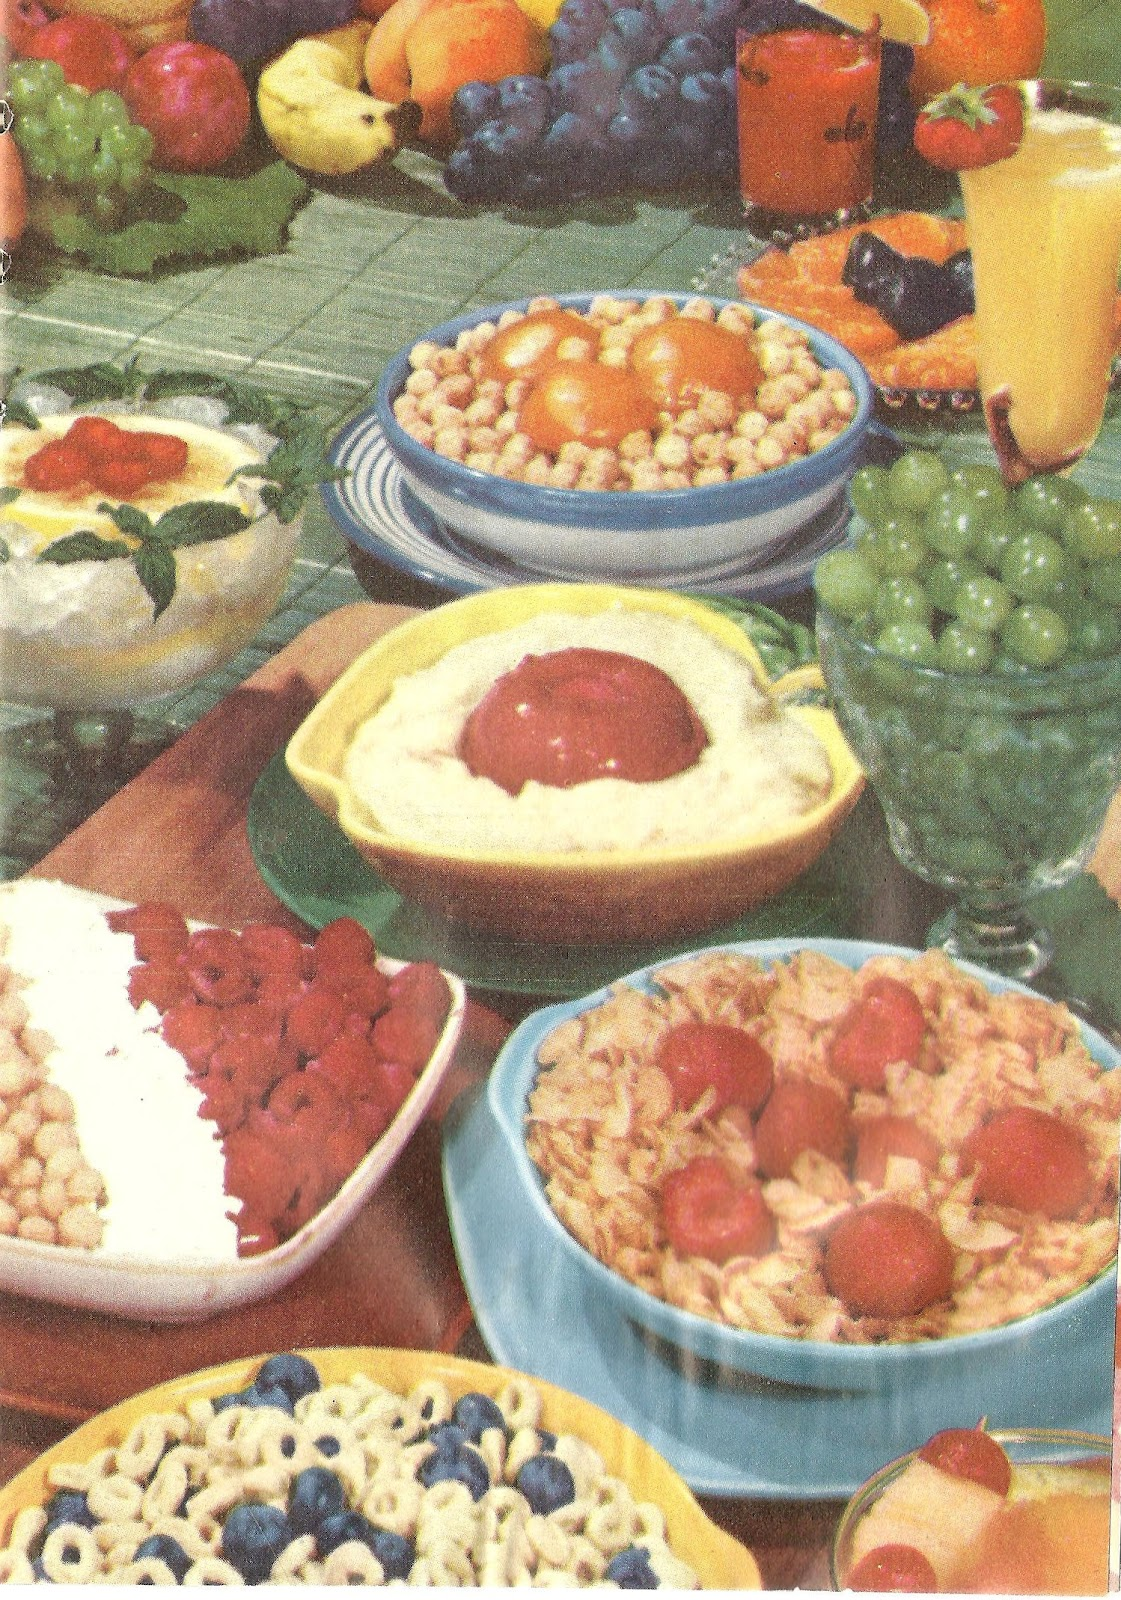 what a fine breakfast feast cereal with various fruits what looks like gruel with a blood clot on top of it orange juice served all fancy in a glass - Buffet Retro Cuisine